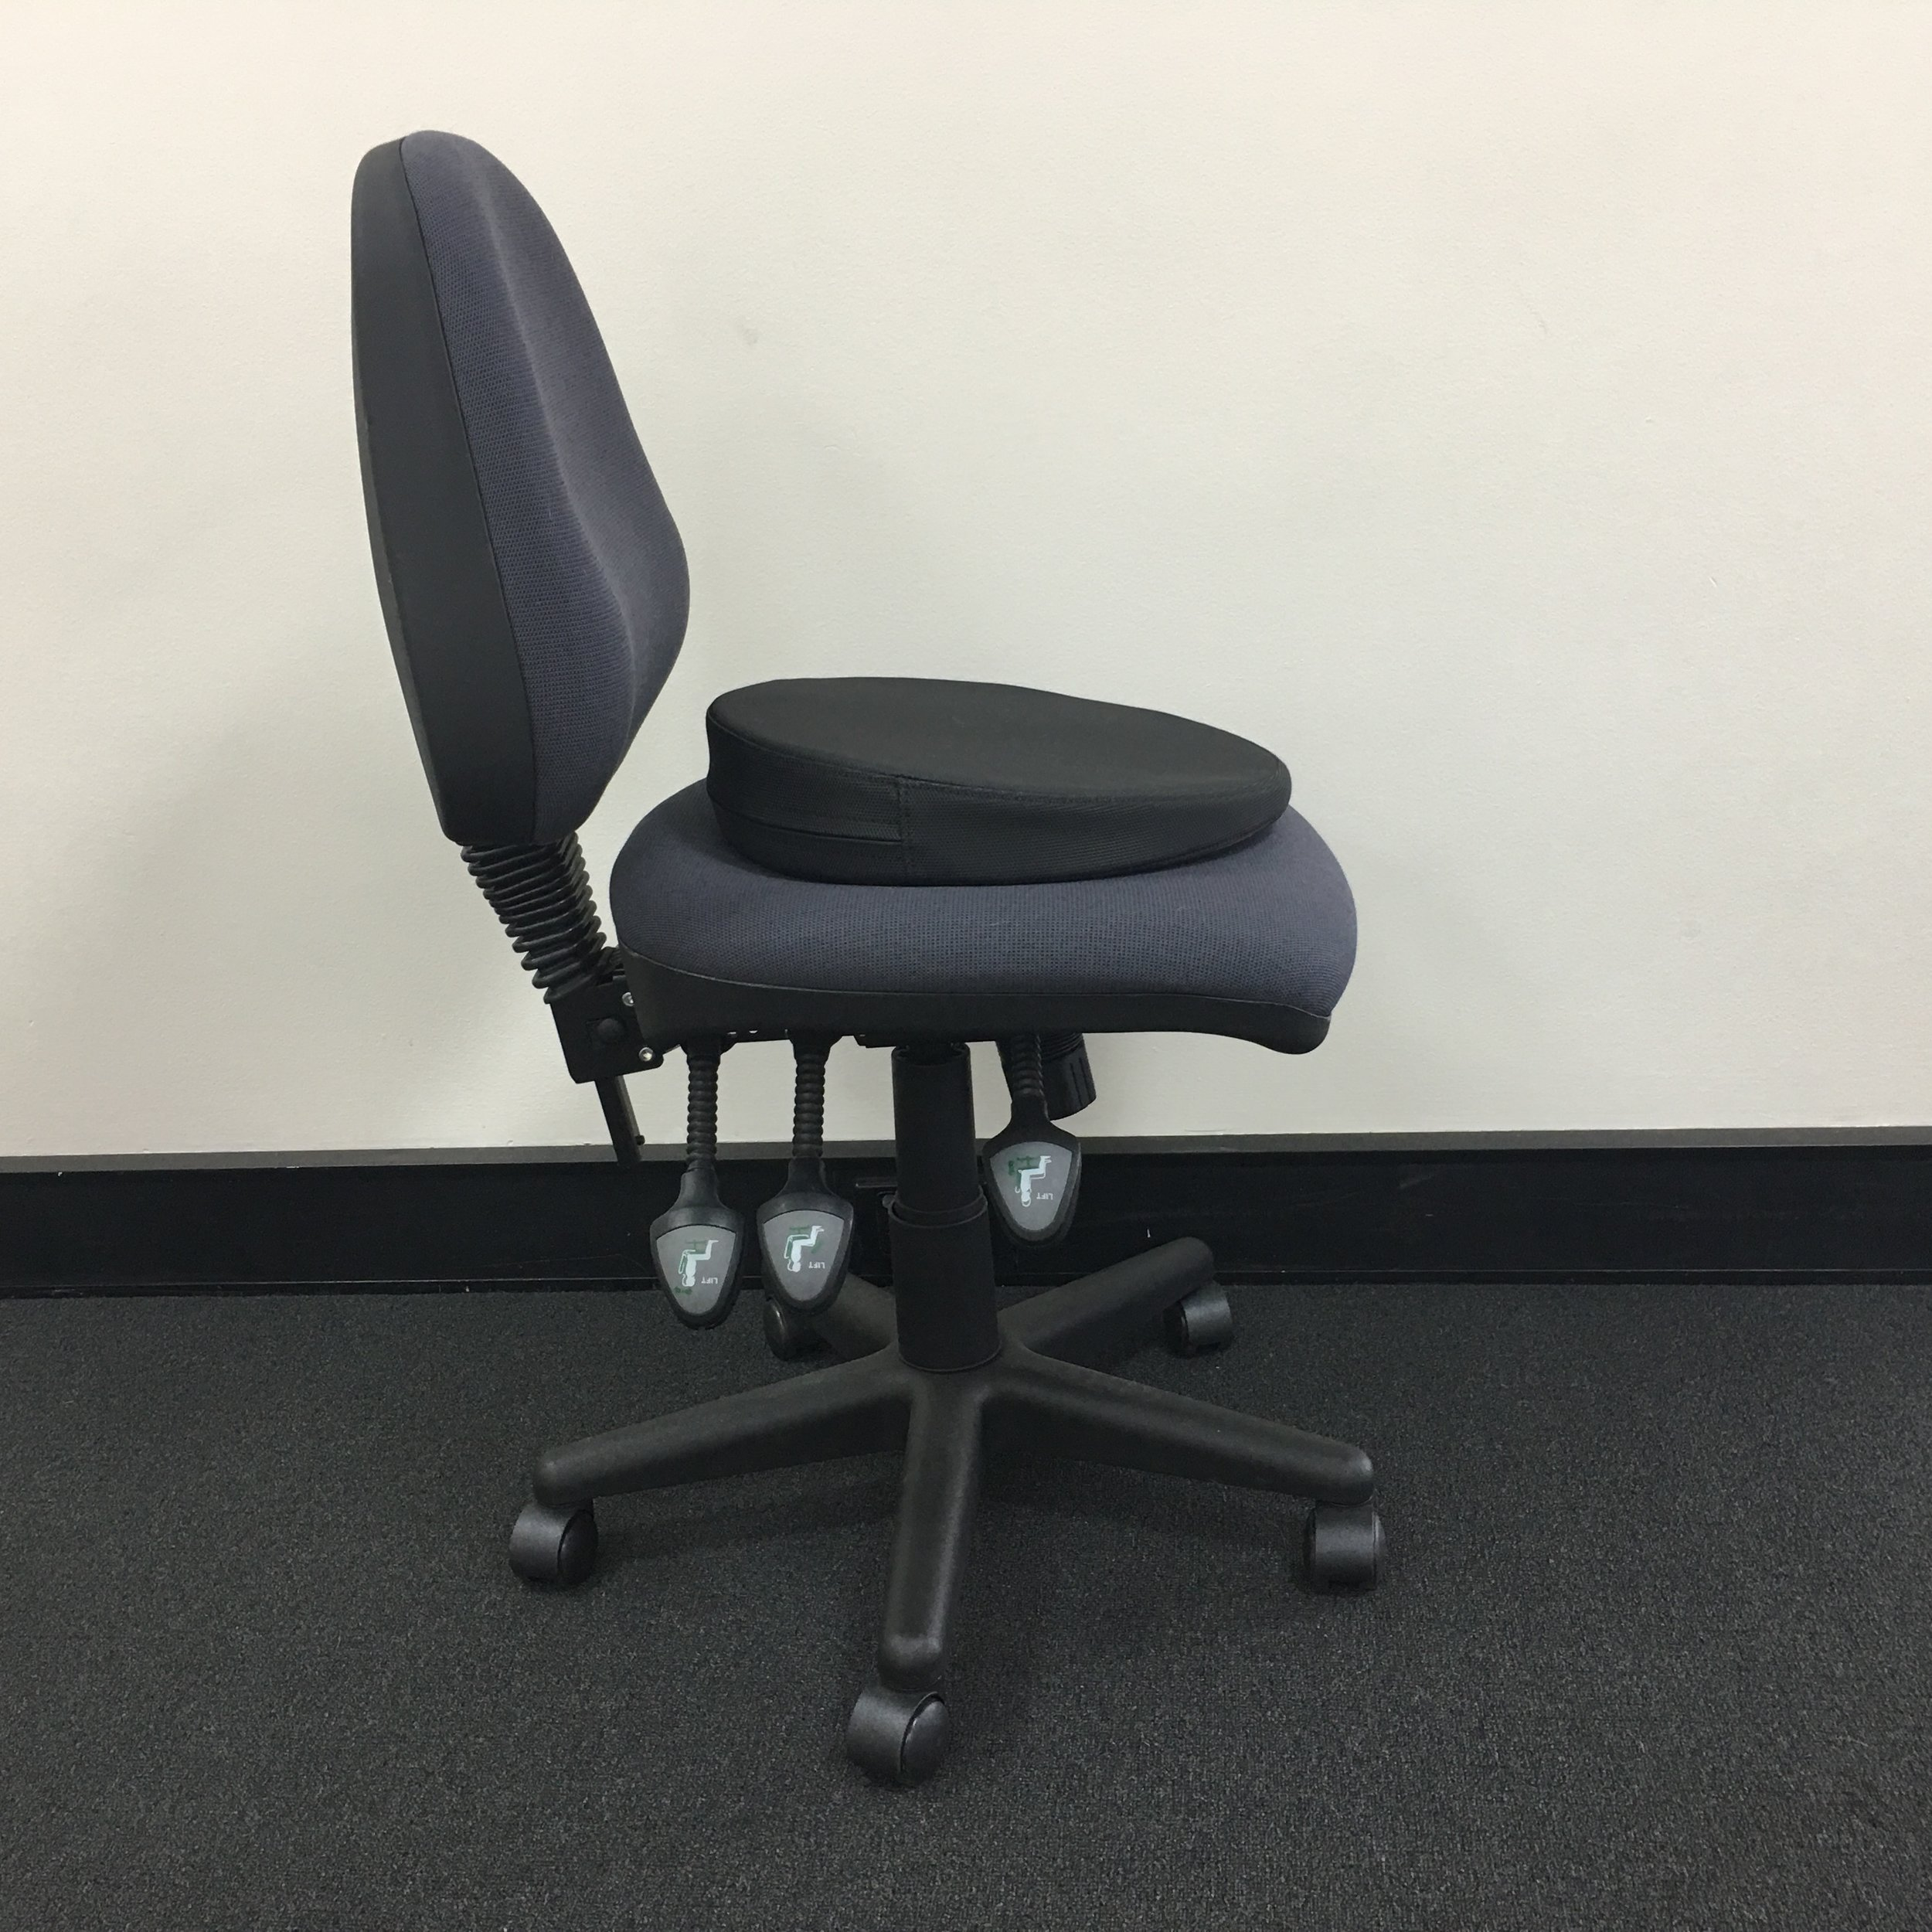 office chair you sit backwards ergonomic new zealand optimum dental posture products in the workshops practitioners train inner ergonomics learning how to on their bones and pivot forward at hip